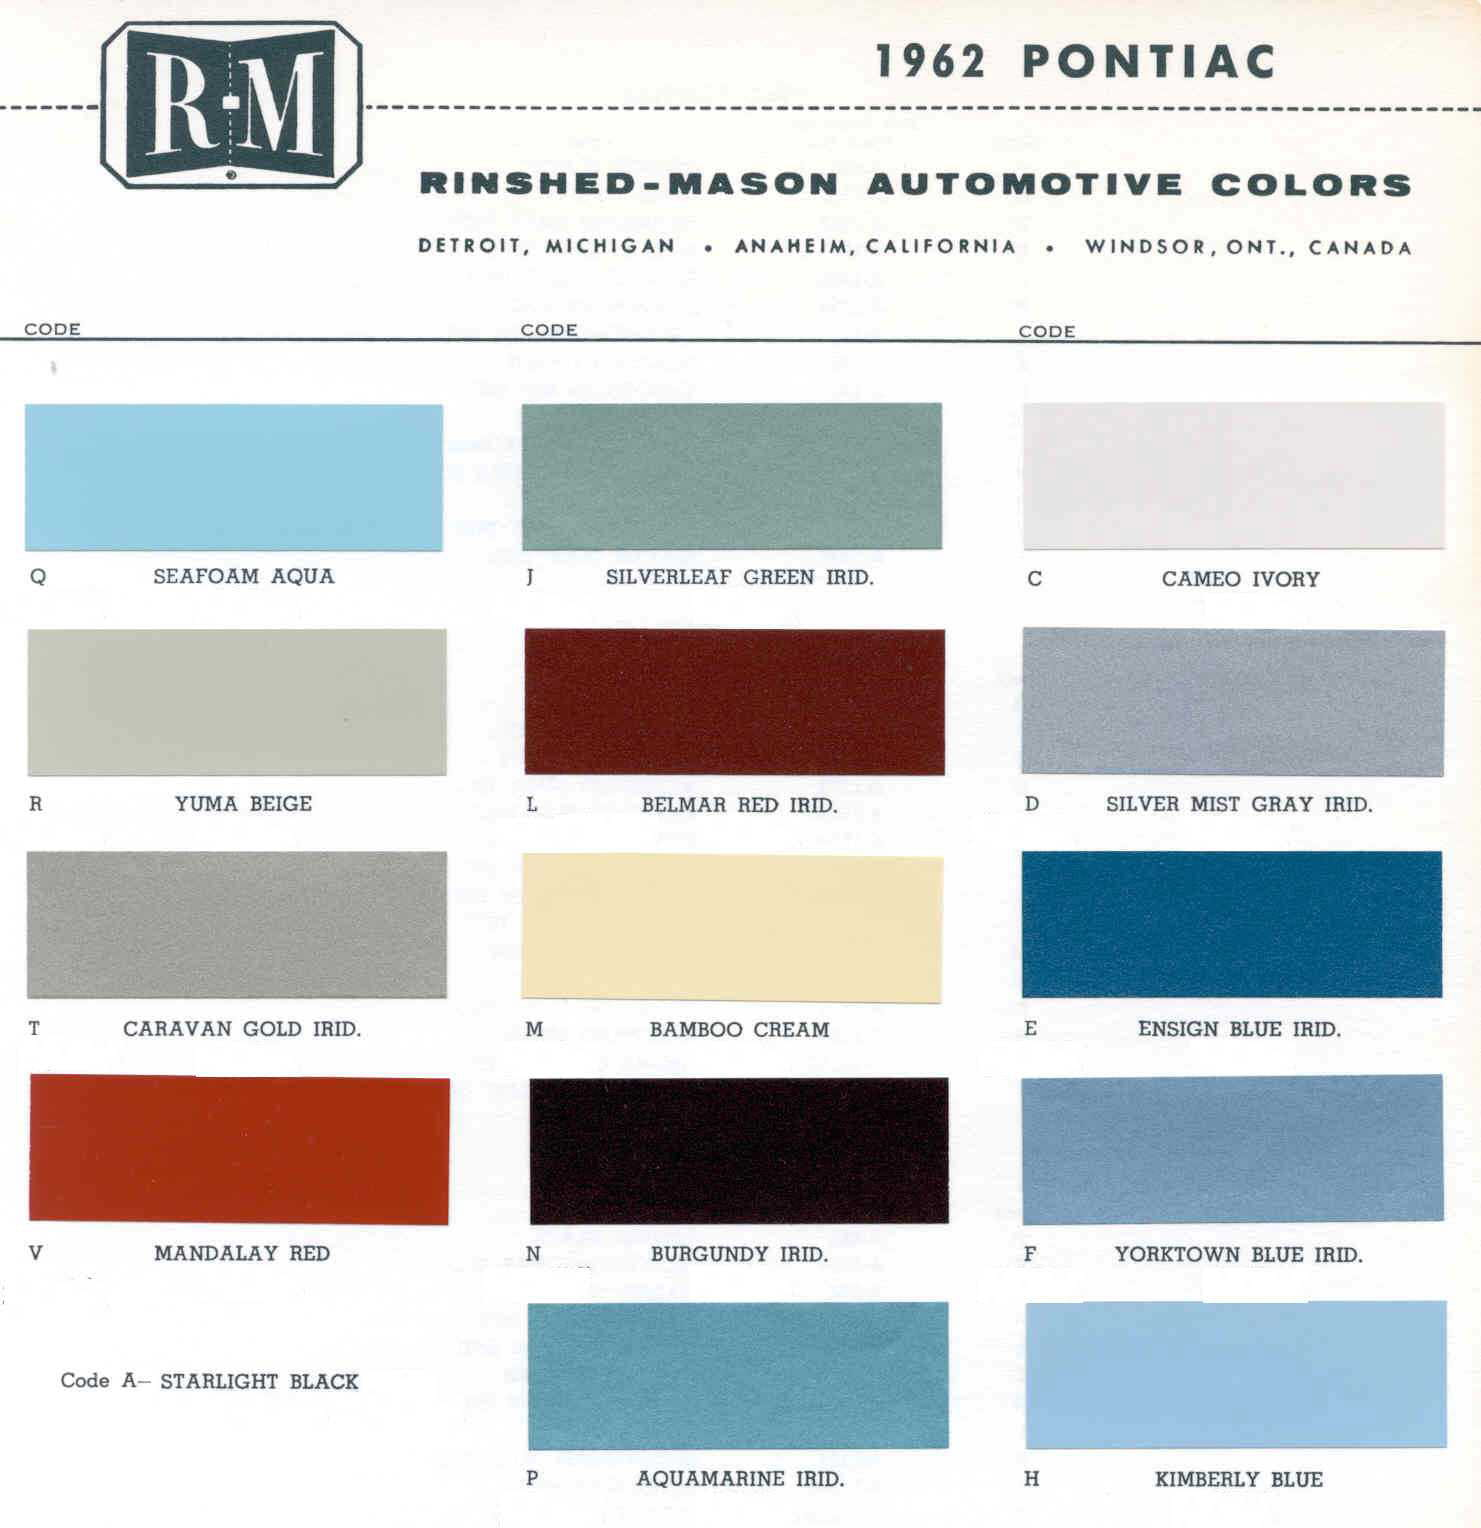 Color Code and Paint Color Chart for Pontiac in 1961